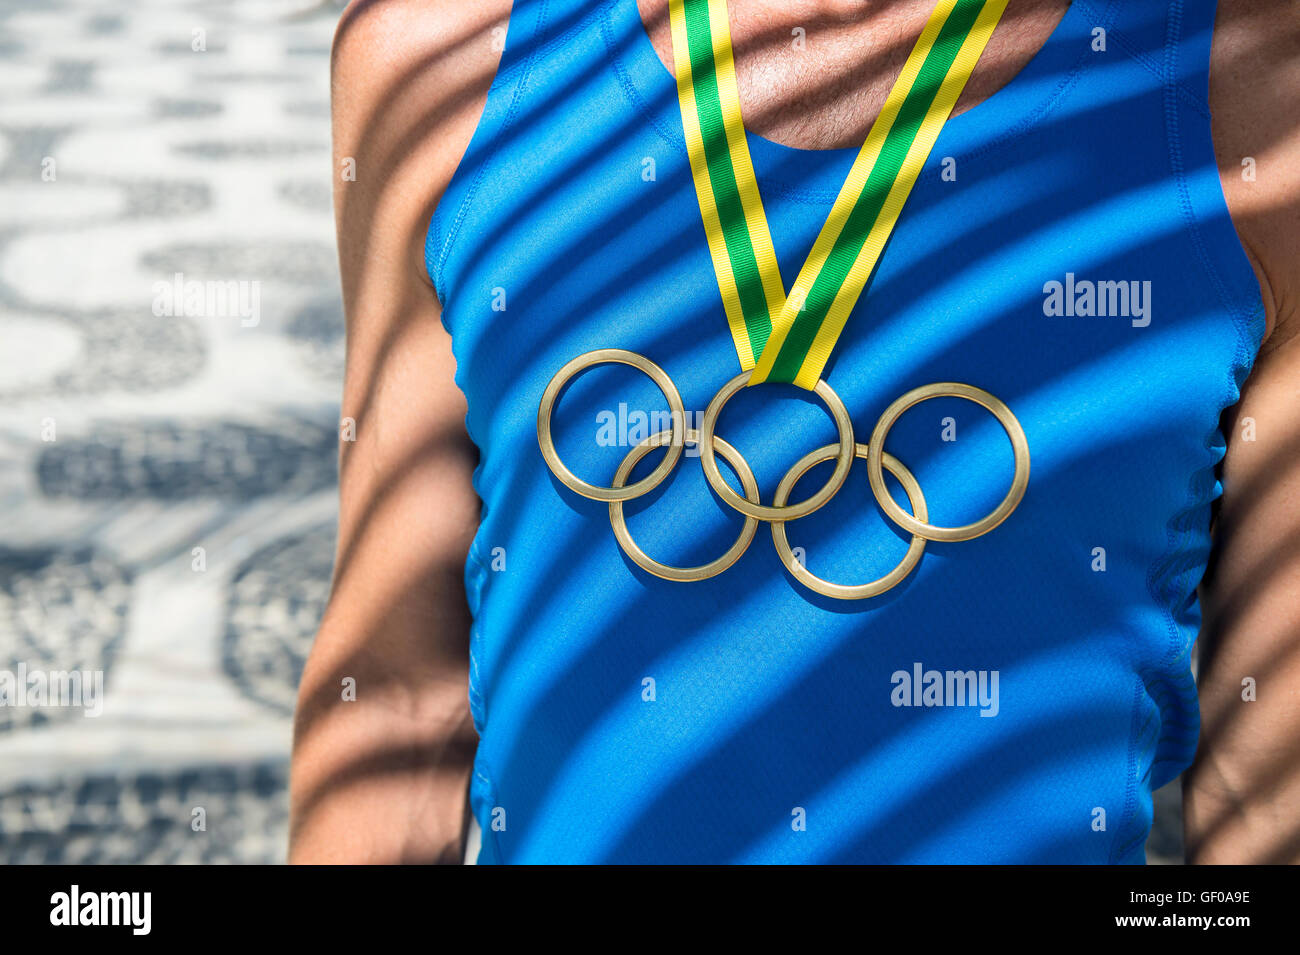 RIO DE JANEIRO - FEBRUARY 23, 2015: Athlete wearing Olympic rings gold medal standing under palm frond shadows. - Stock Image